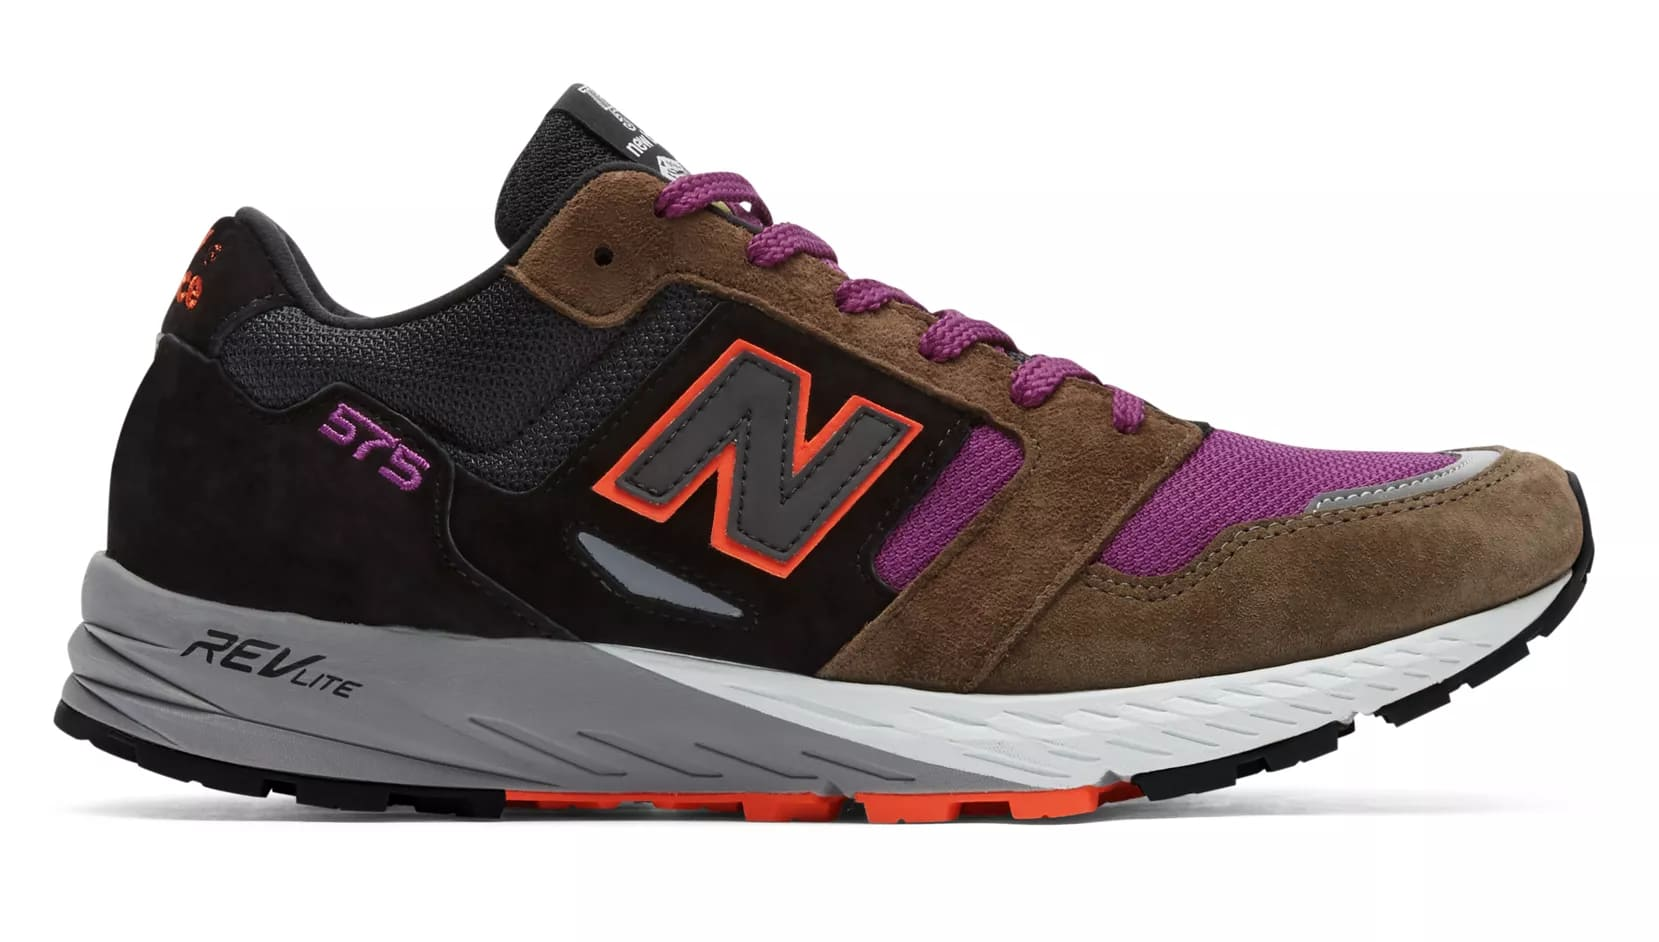 New Balance 575 Made in UK Autumn Trail